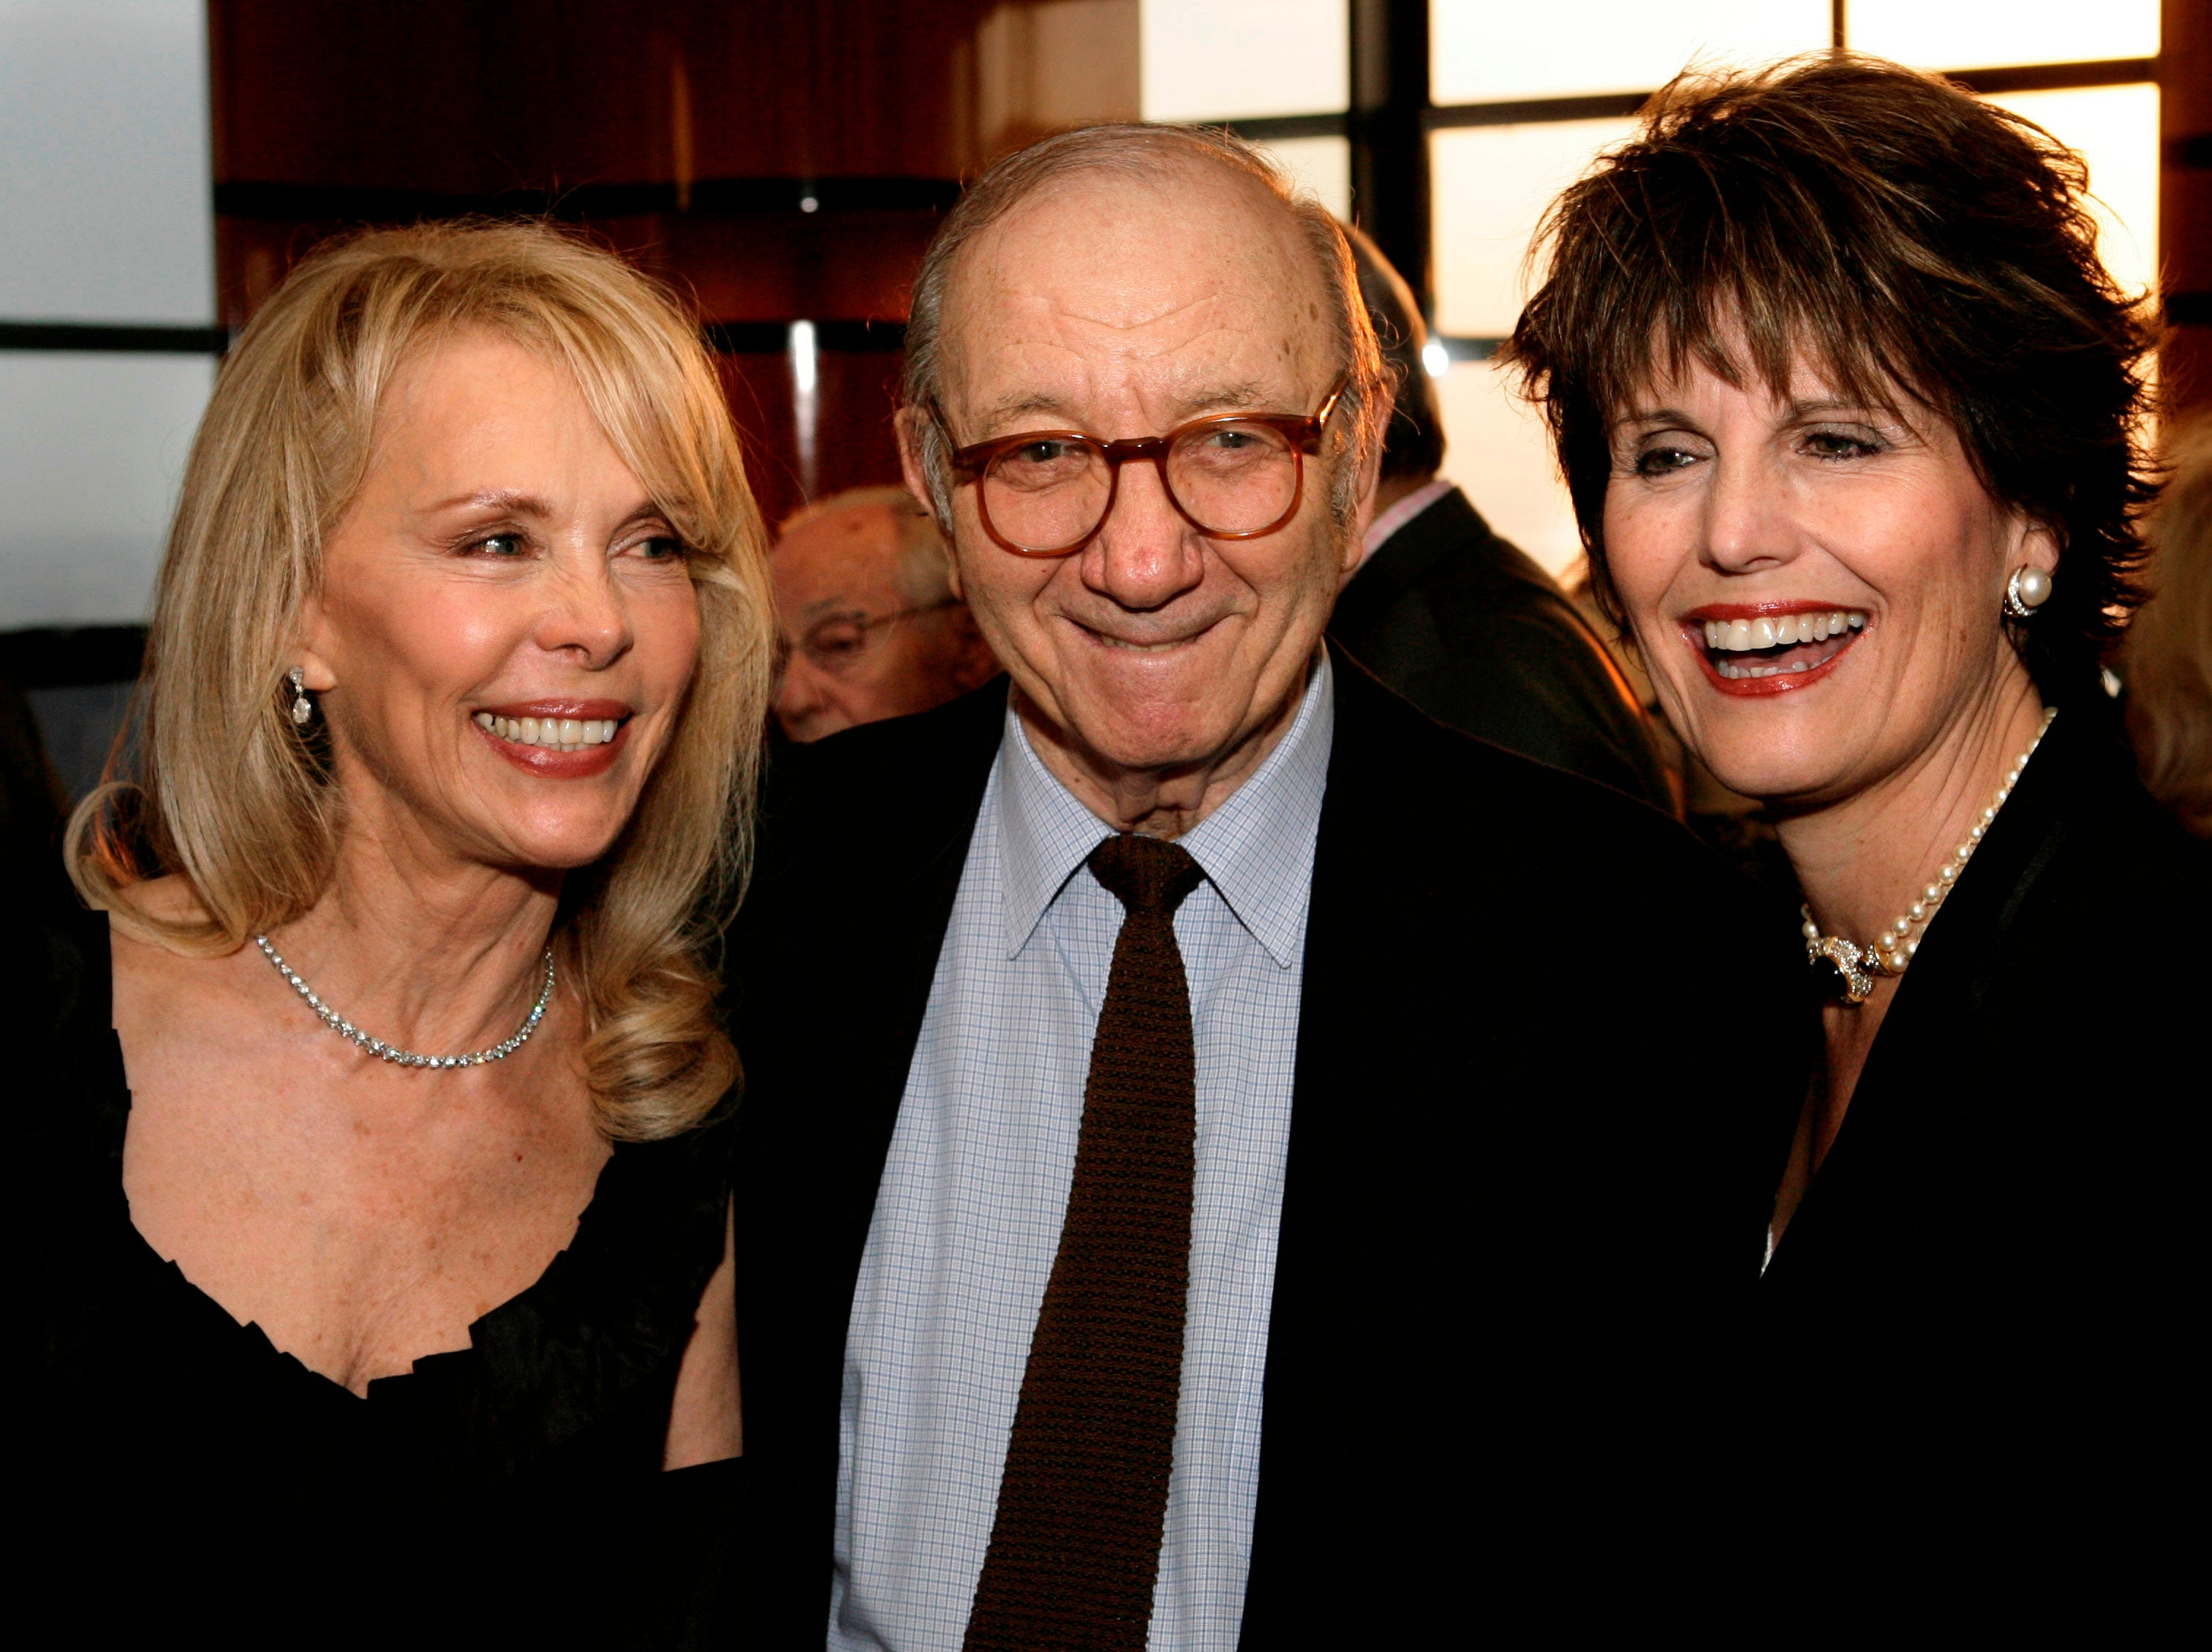 Neil Simon, center, his wife Elaine Joyce, left, and Lucie Arnaz pose for a picture at the reception for the Eugene O'Neill Theater Center's Monte Cristo Award in New York, Monday, April 21, 2008.  The award, which is given in recognition of distinguished careers, was given to playwright Simon.  (AP Photo/Seth Wenig)